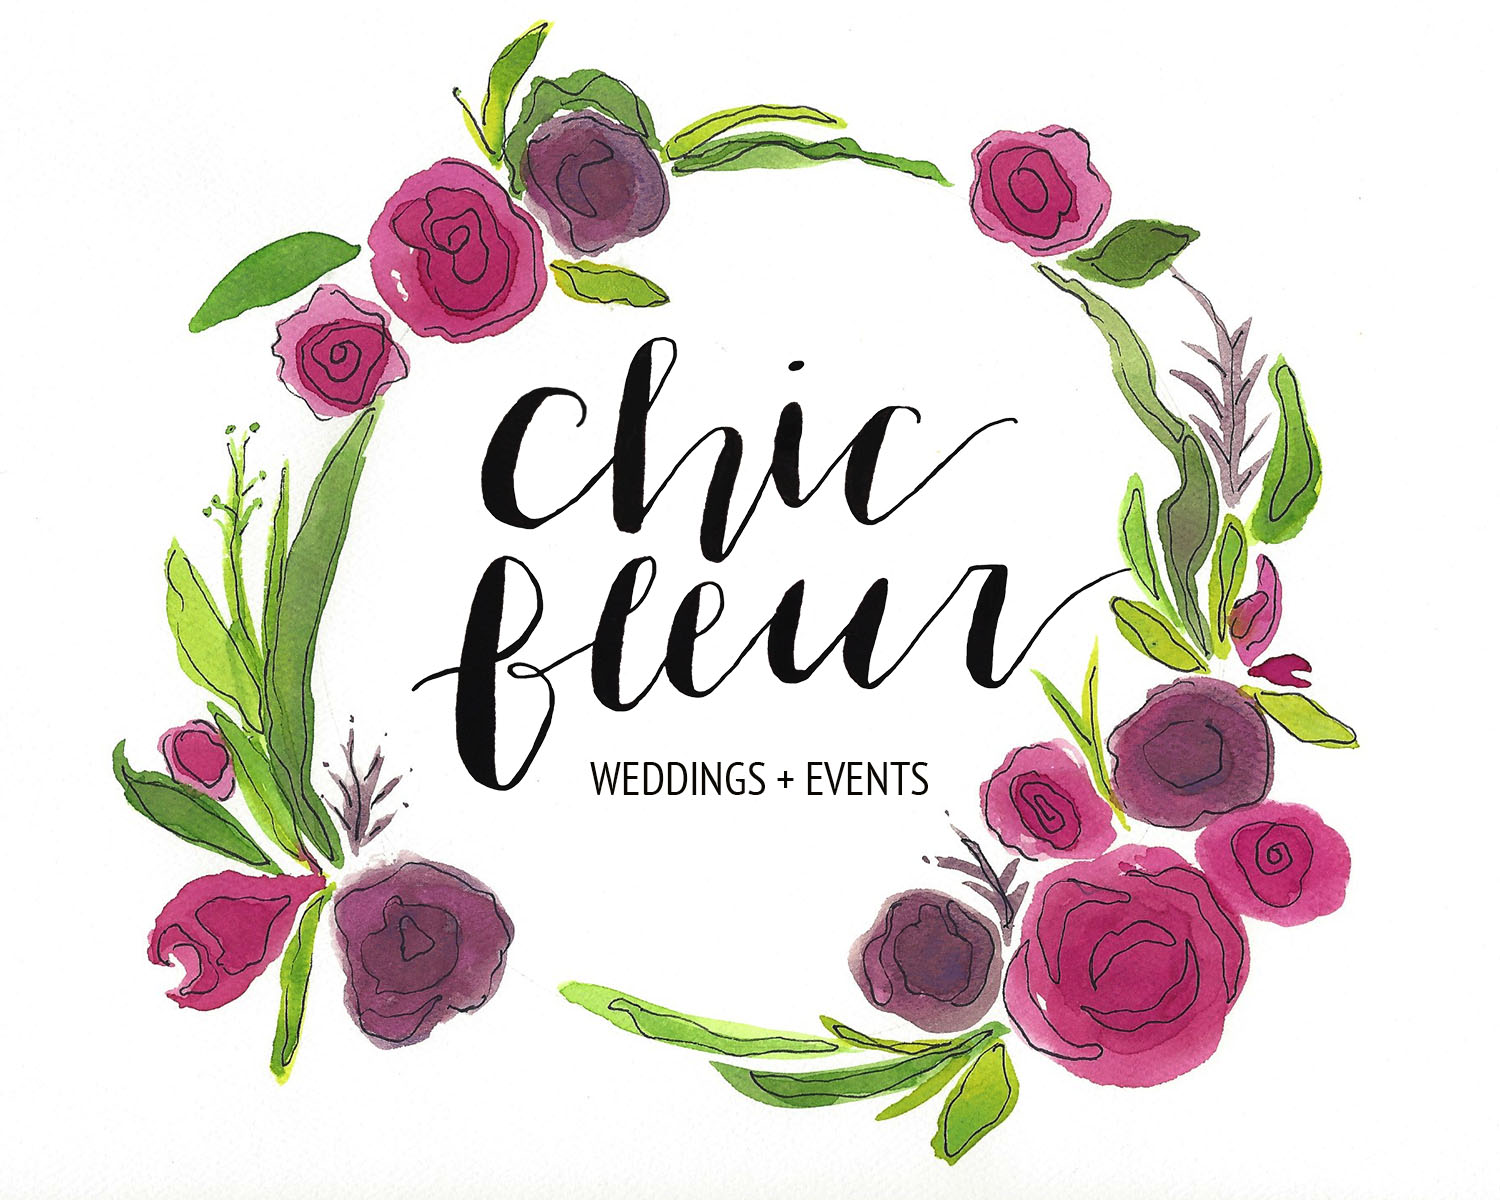 Chic Fleur Weddings and Events - North Texas Wedding Wedding Planner